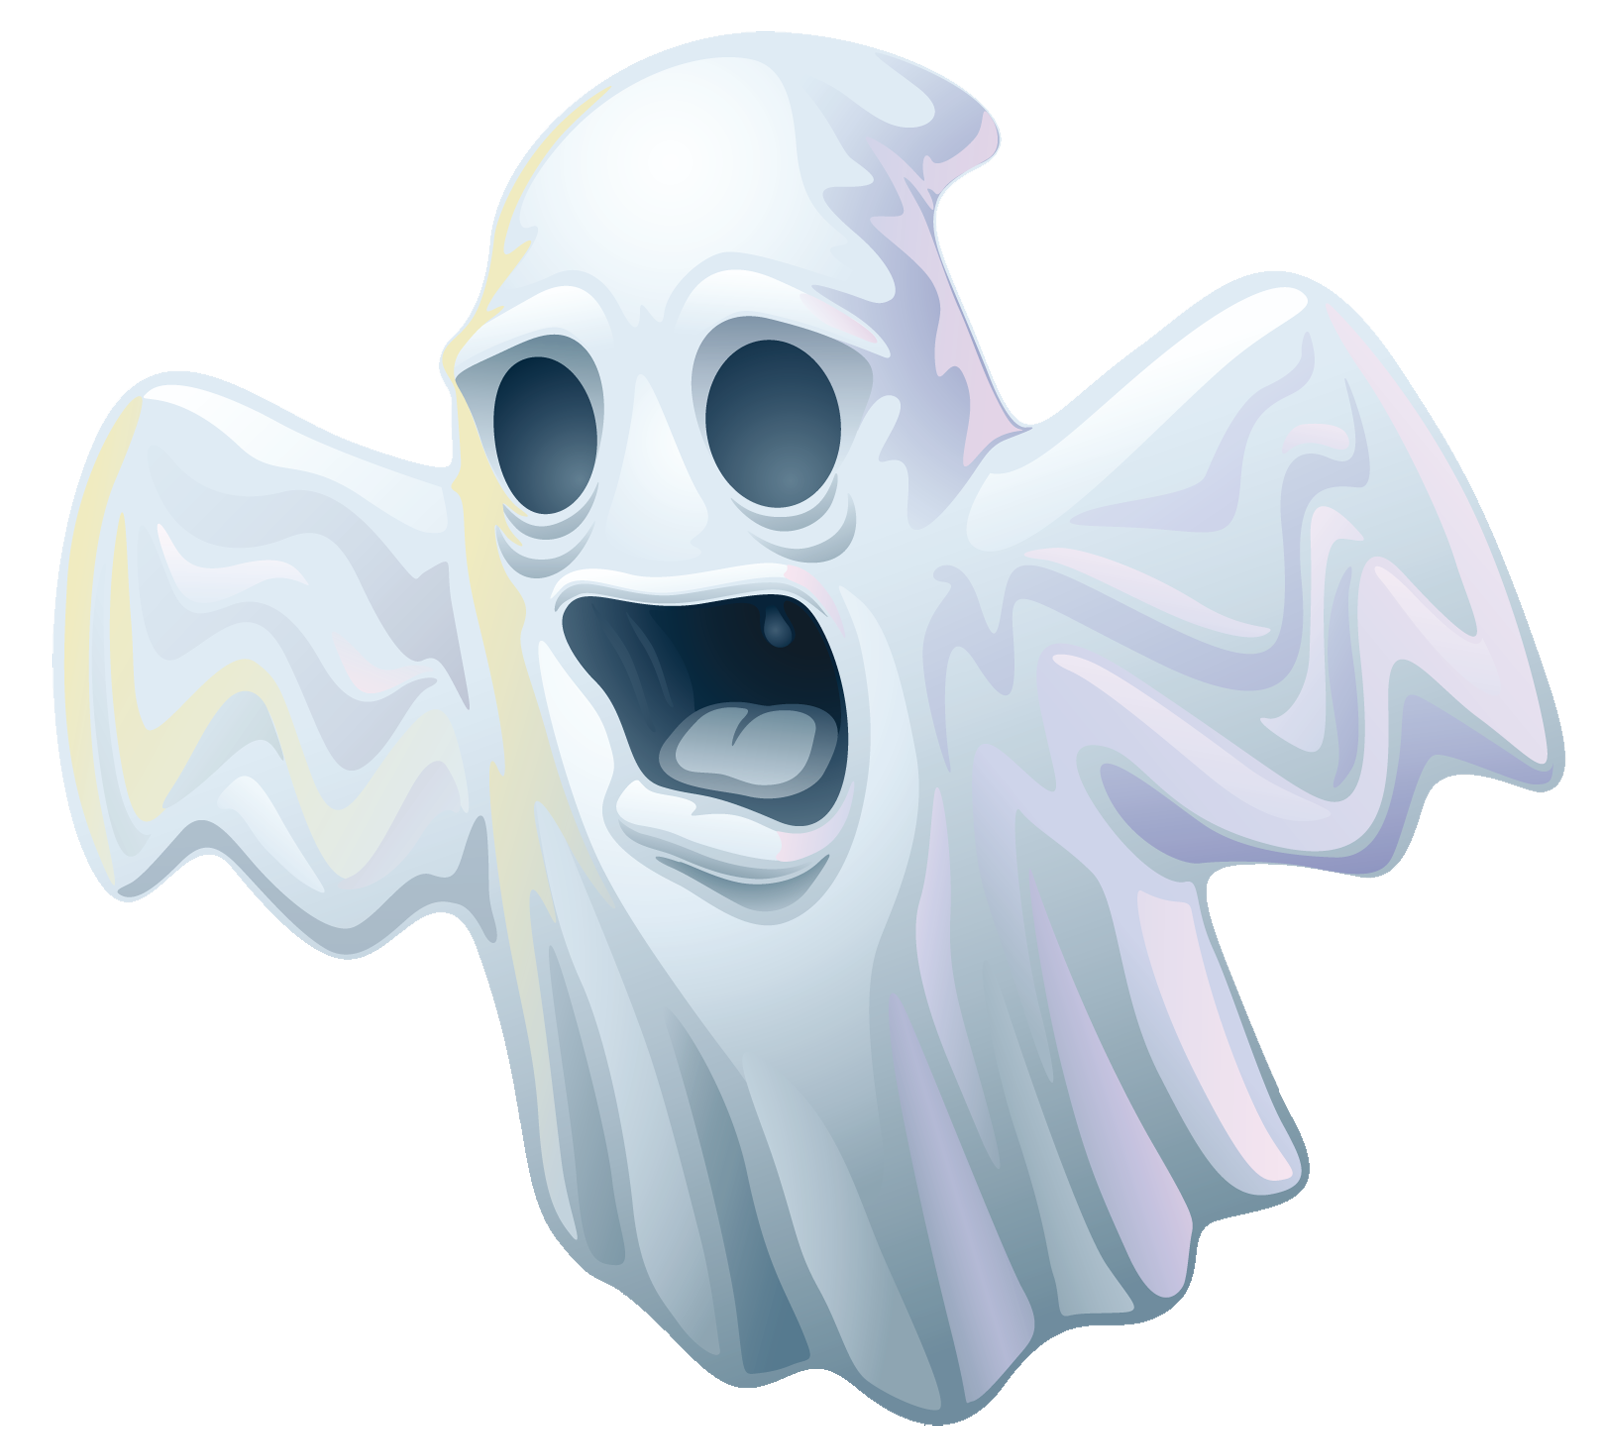 Halloween Ghost Png Image #36307 - Ghost, Transparent background PNG HD thumbnail